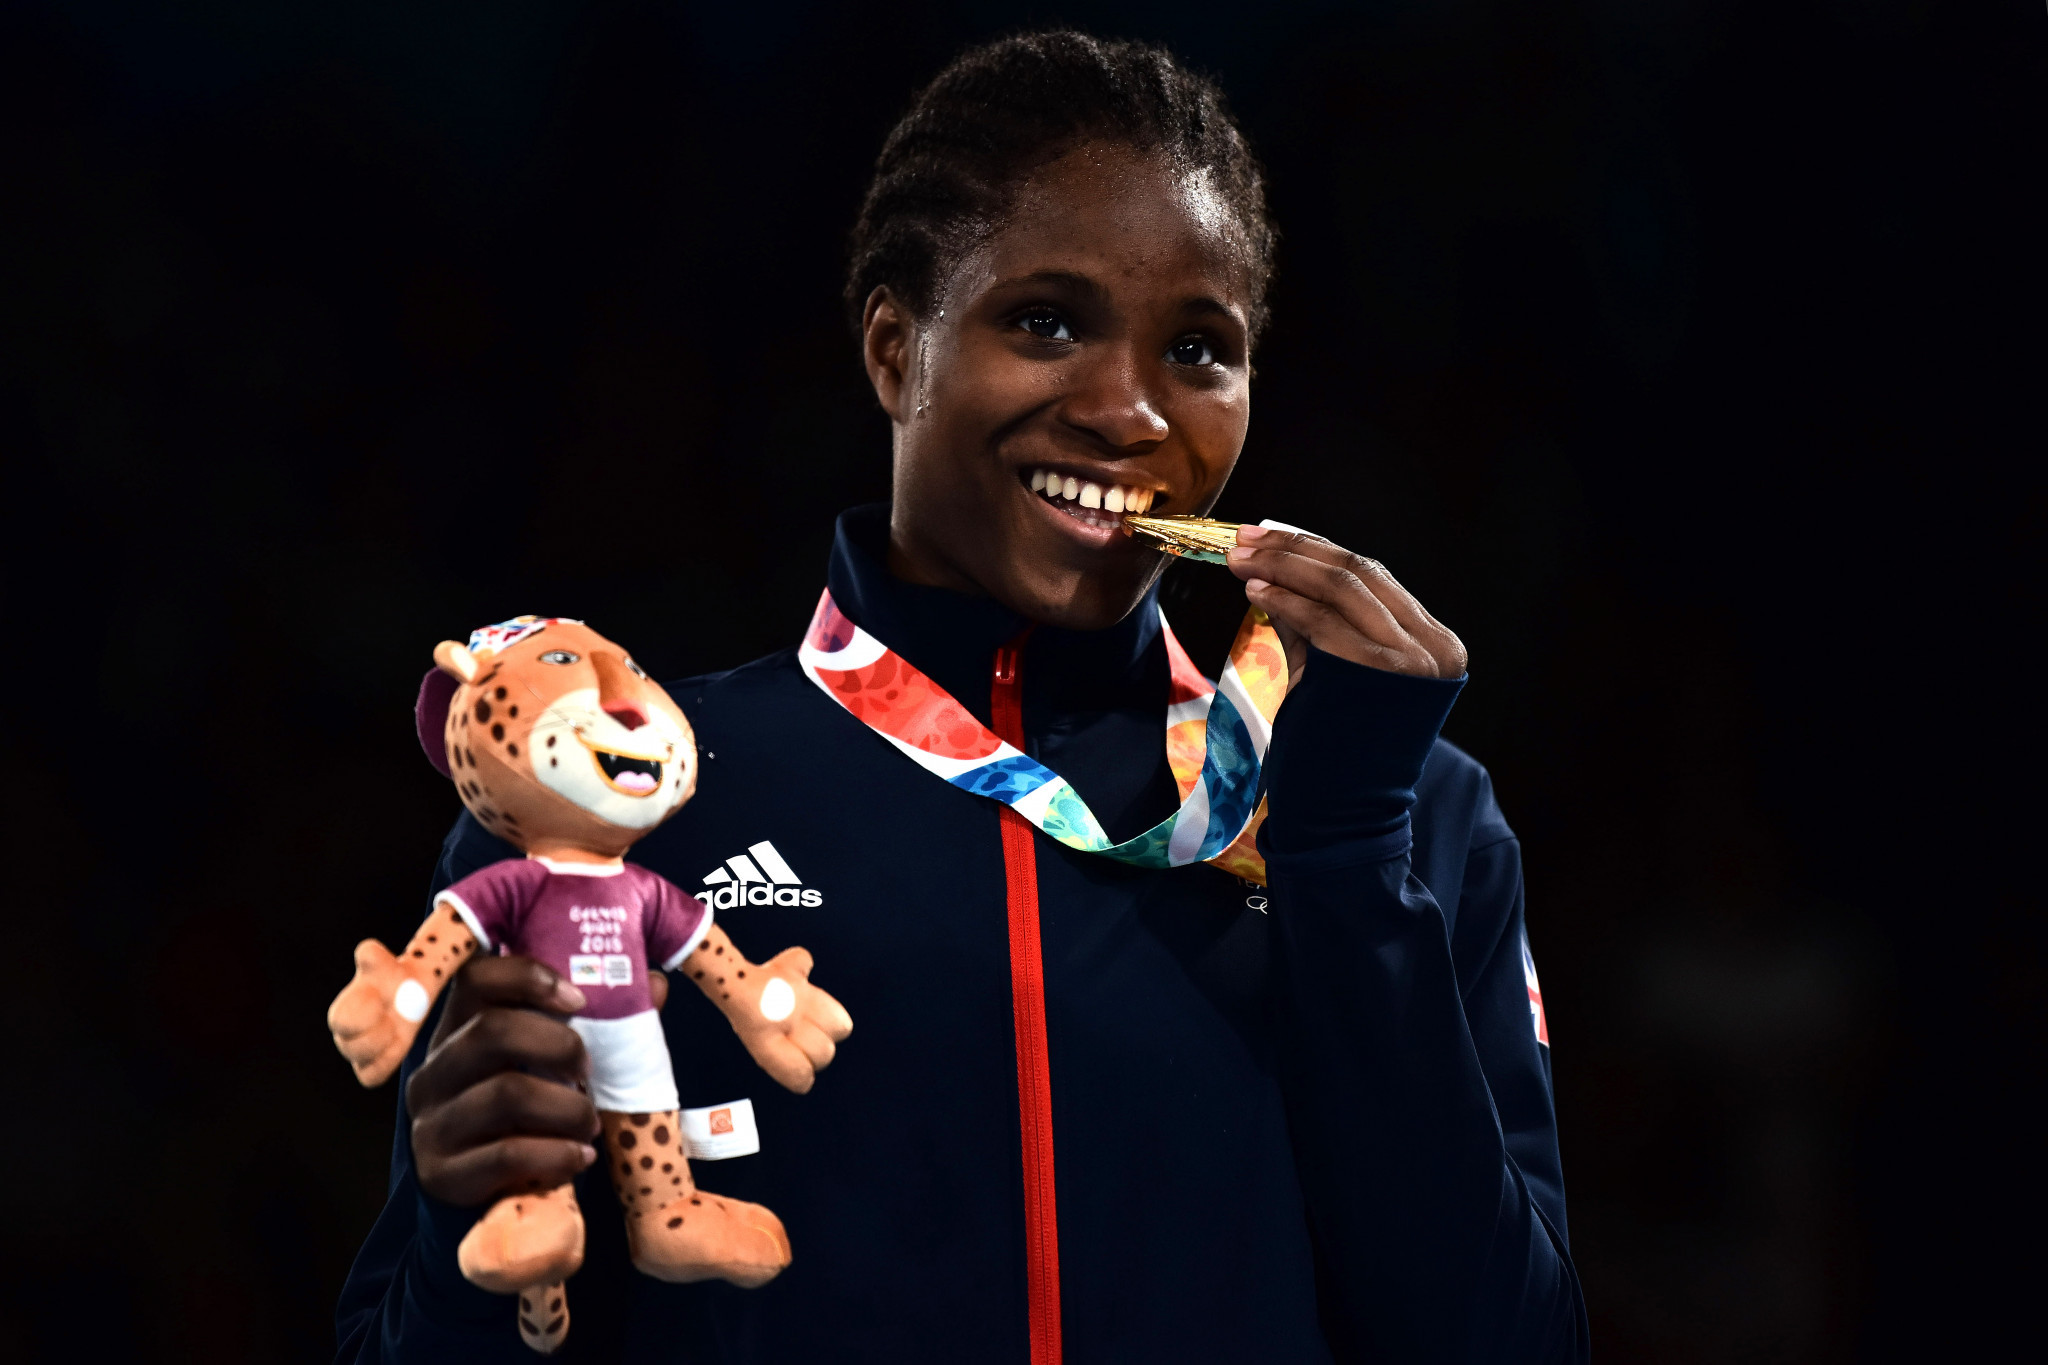 Caroline Dubois is currently undefeated and will make her British senior debut at the European qualifiers in London next month ©Getty Images